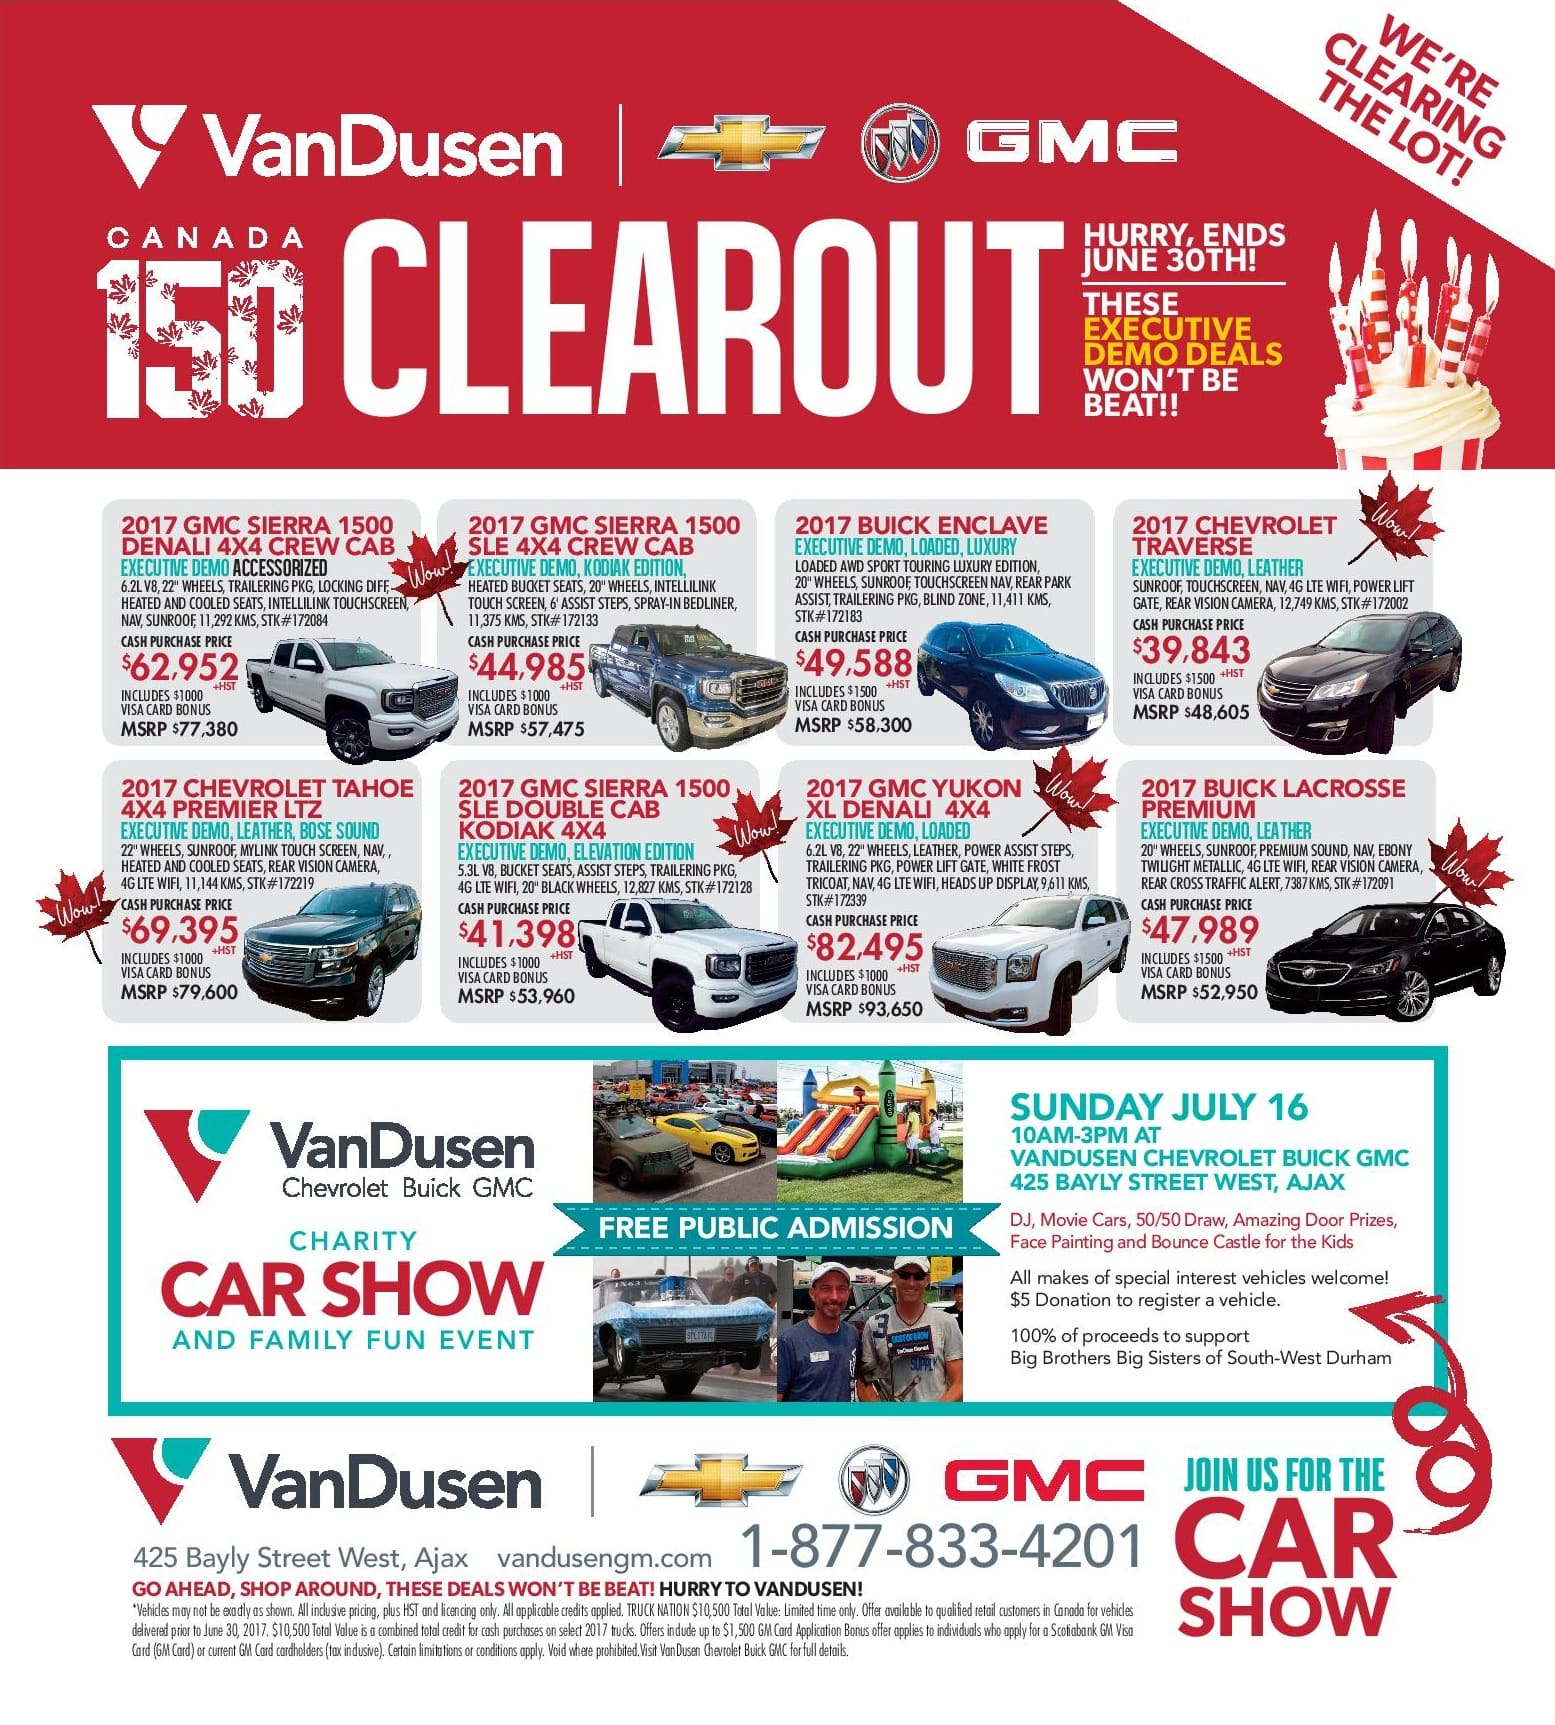 Cars Trucks SUVs Discount Sale Clearout Ajax Durham Region Oshawa